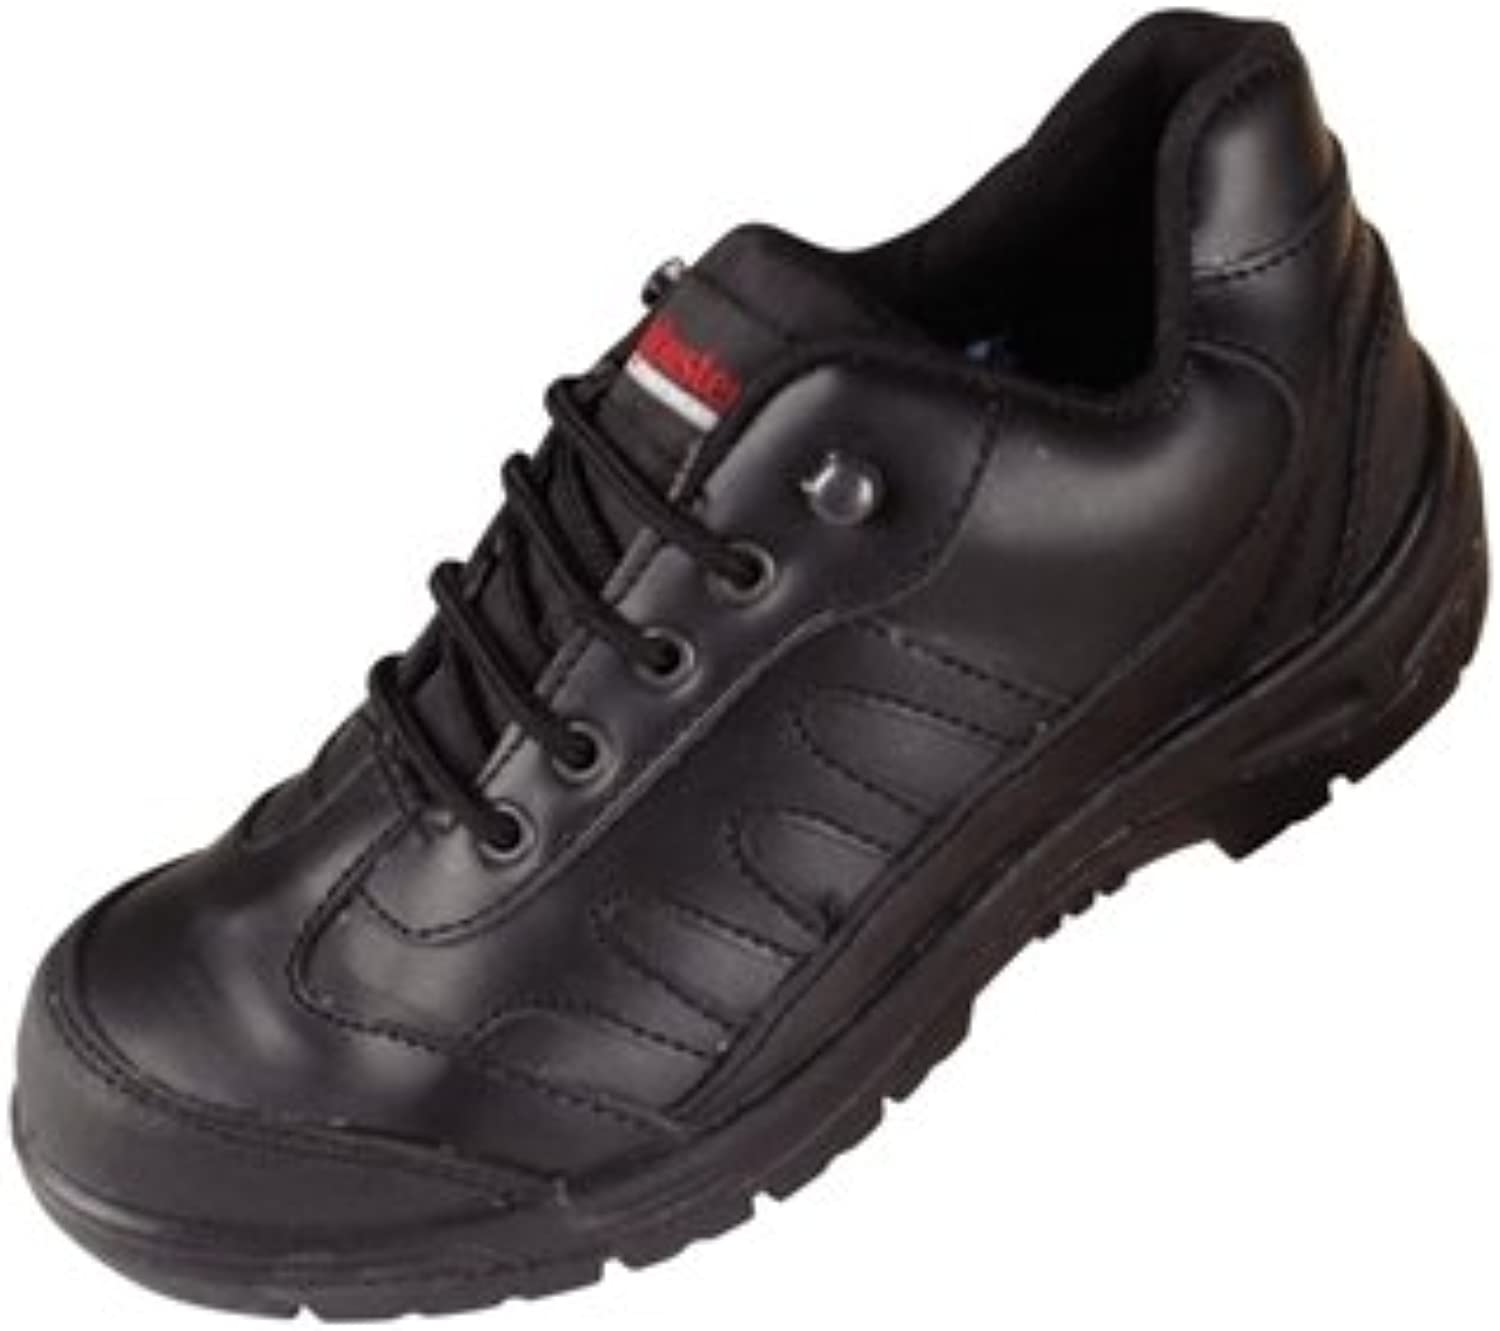 Slipbuster Footwear A314-46 Safety Trainer, Size 46